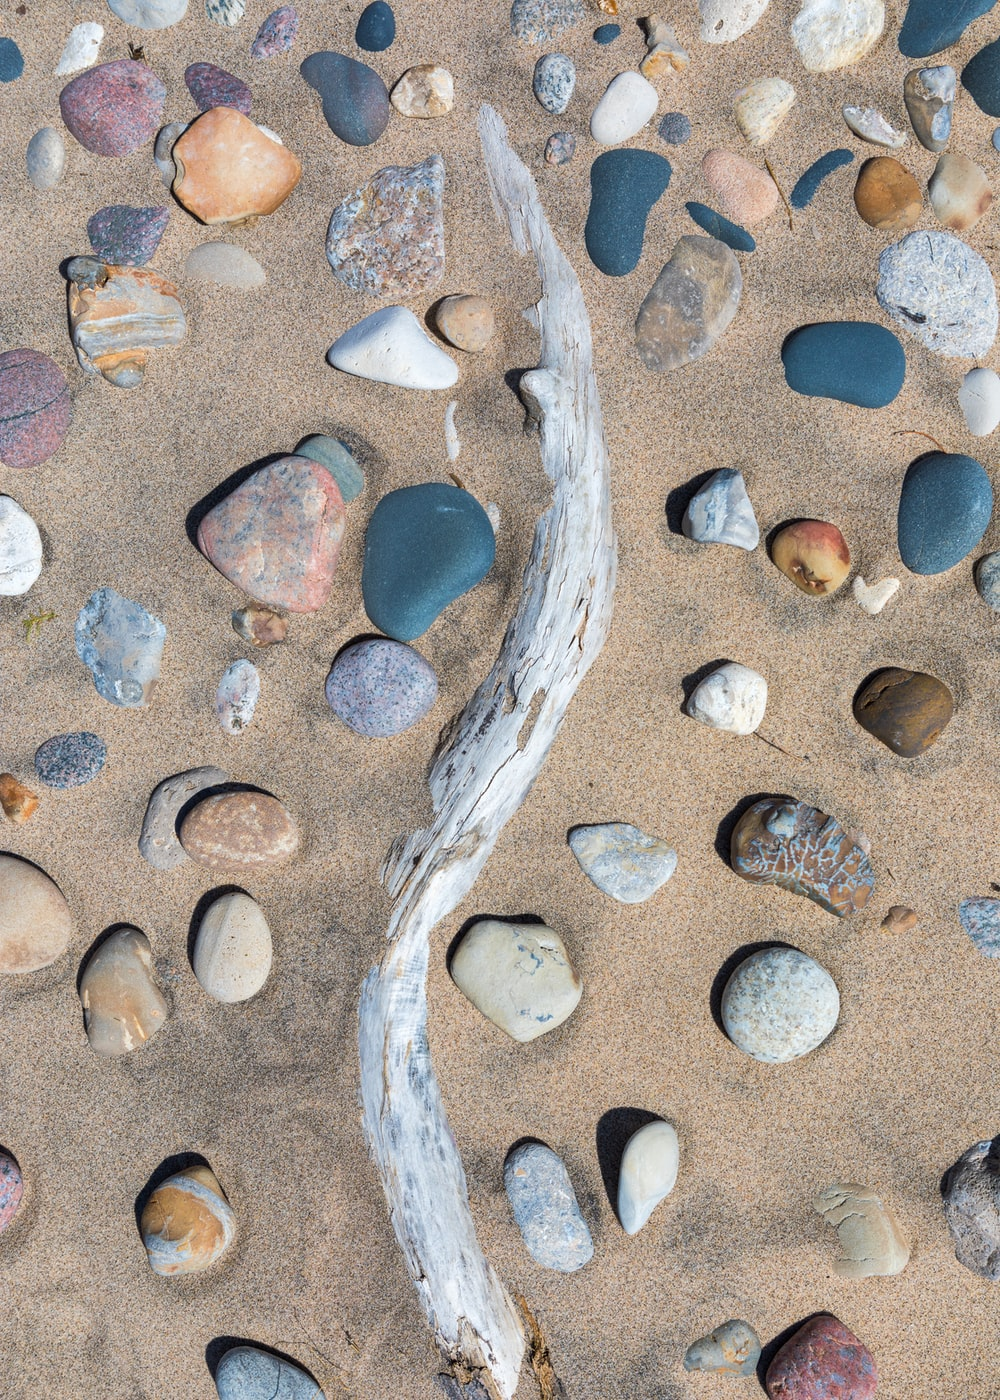 blue and brown stone fragments on beach